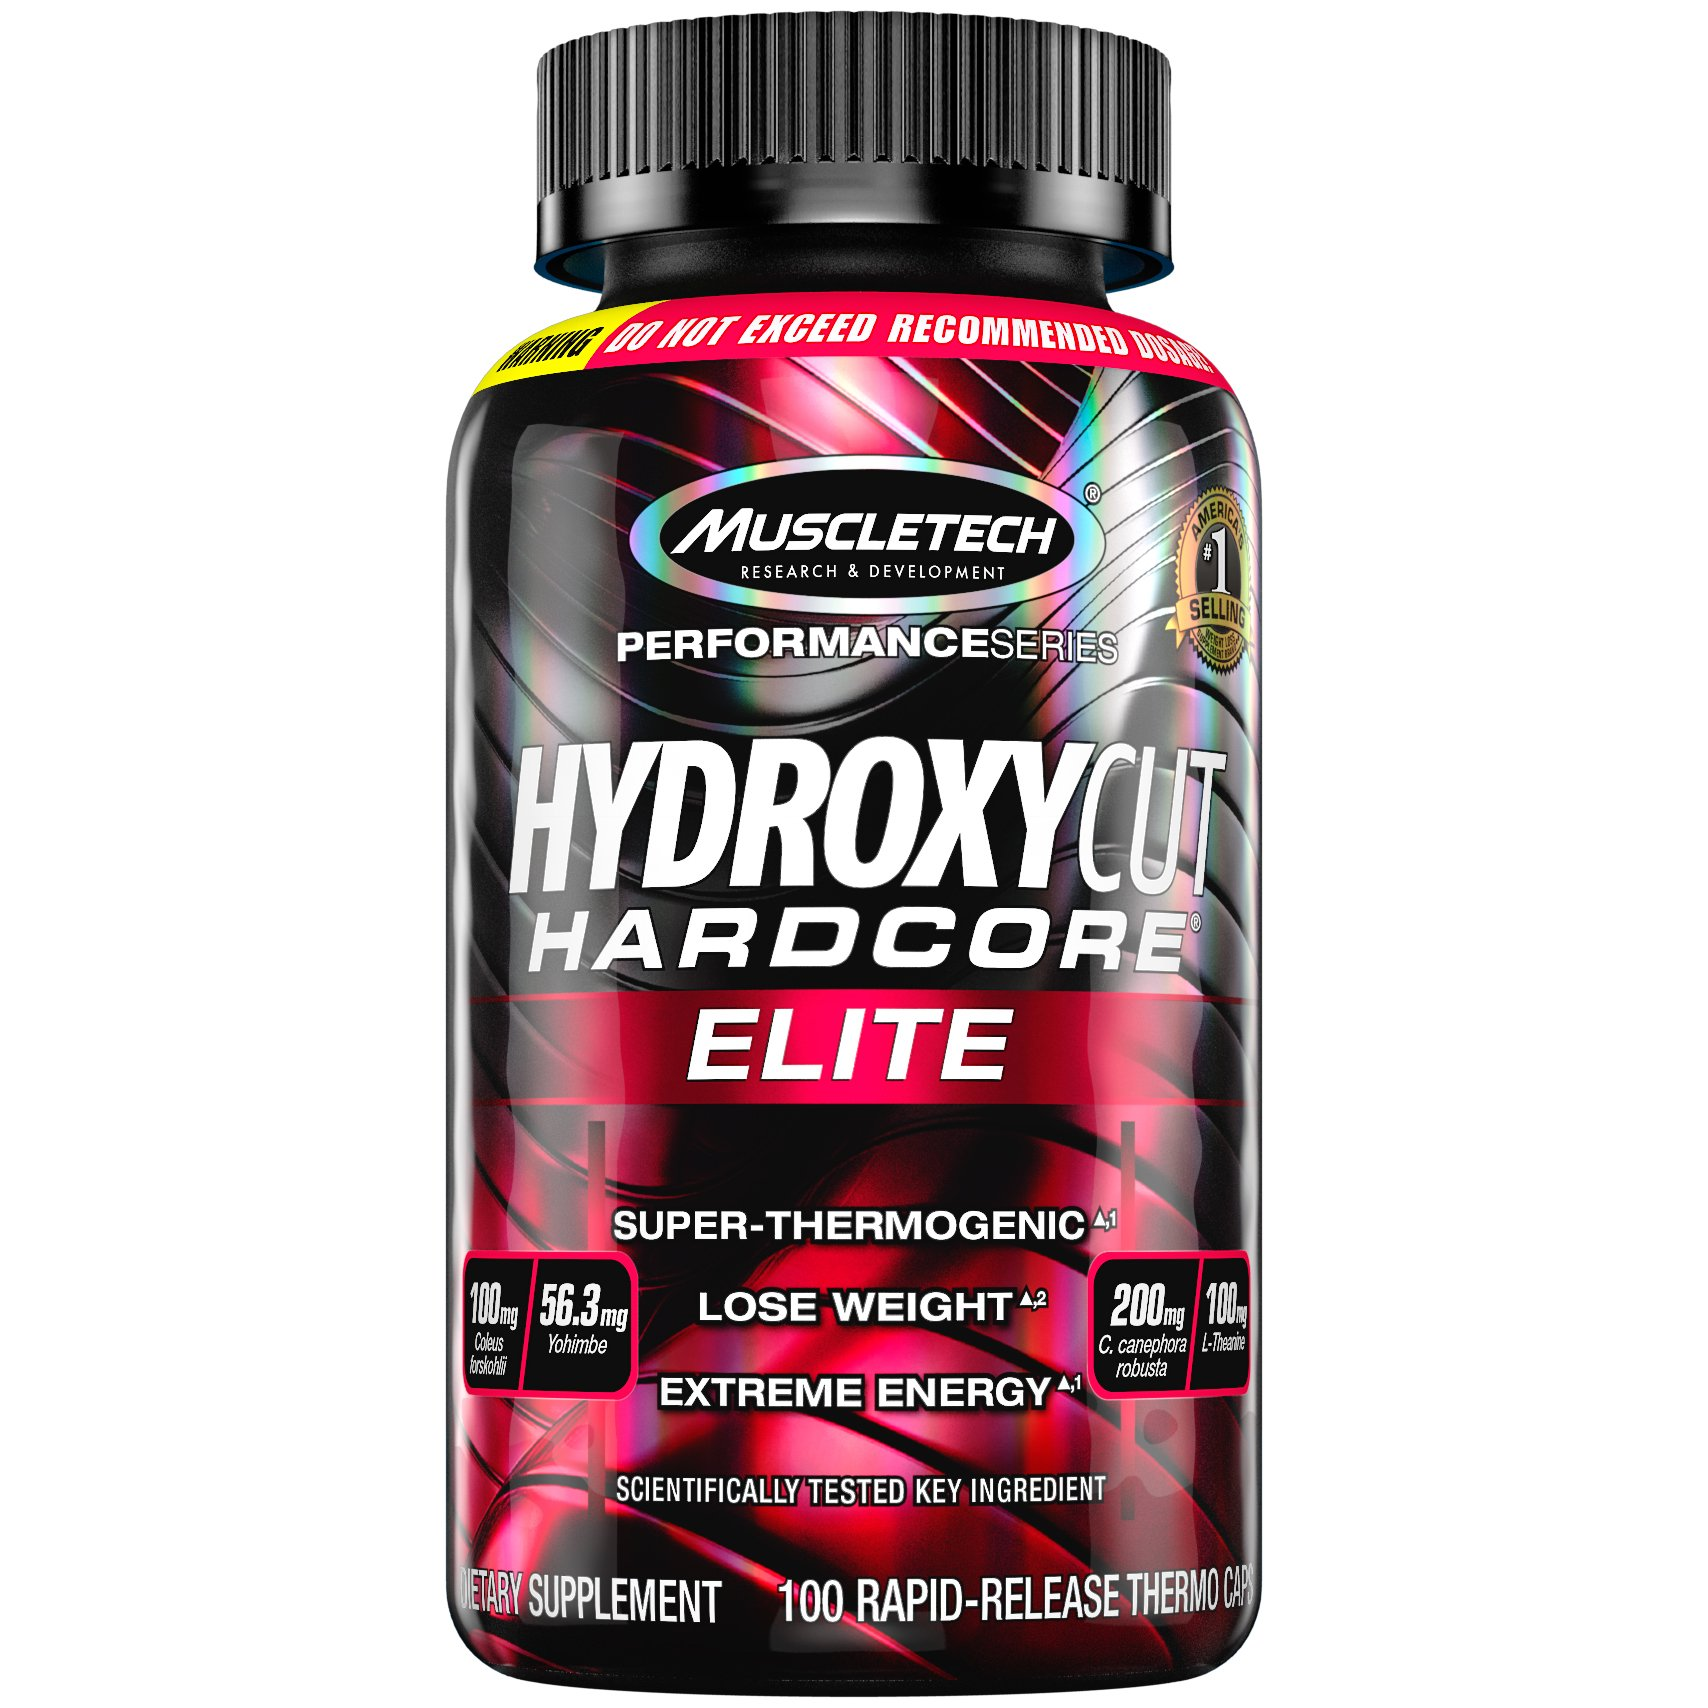 Hydroxycut Hardcore Elite, 100ct, 100mg Coleus Forskohlii, 56.3mg Yohimbe, 200mg Green Coffee, 100mg L-Theanin,200mg C.canephora Robusta (Packaging May Vary)